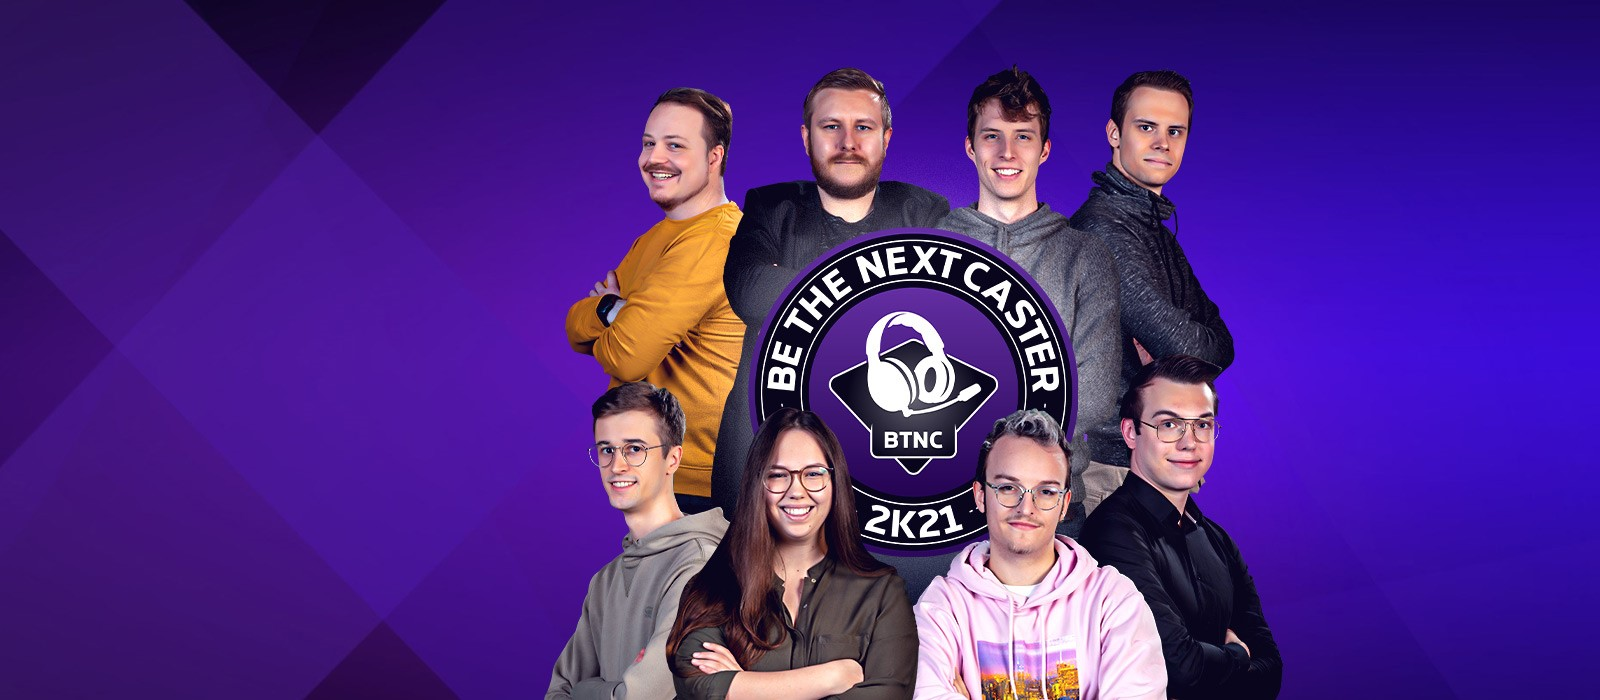 Be the Next Caster